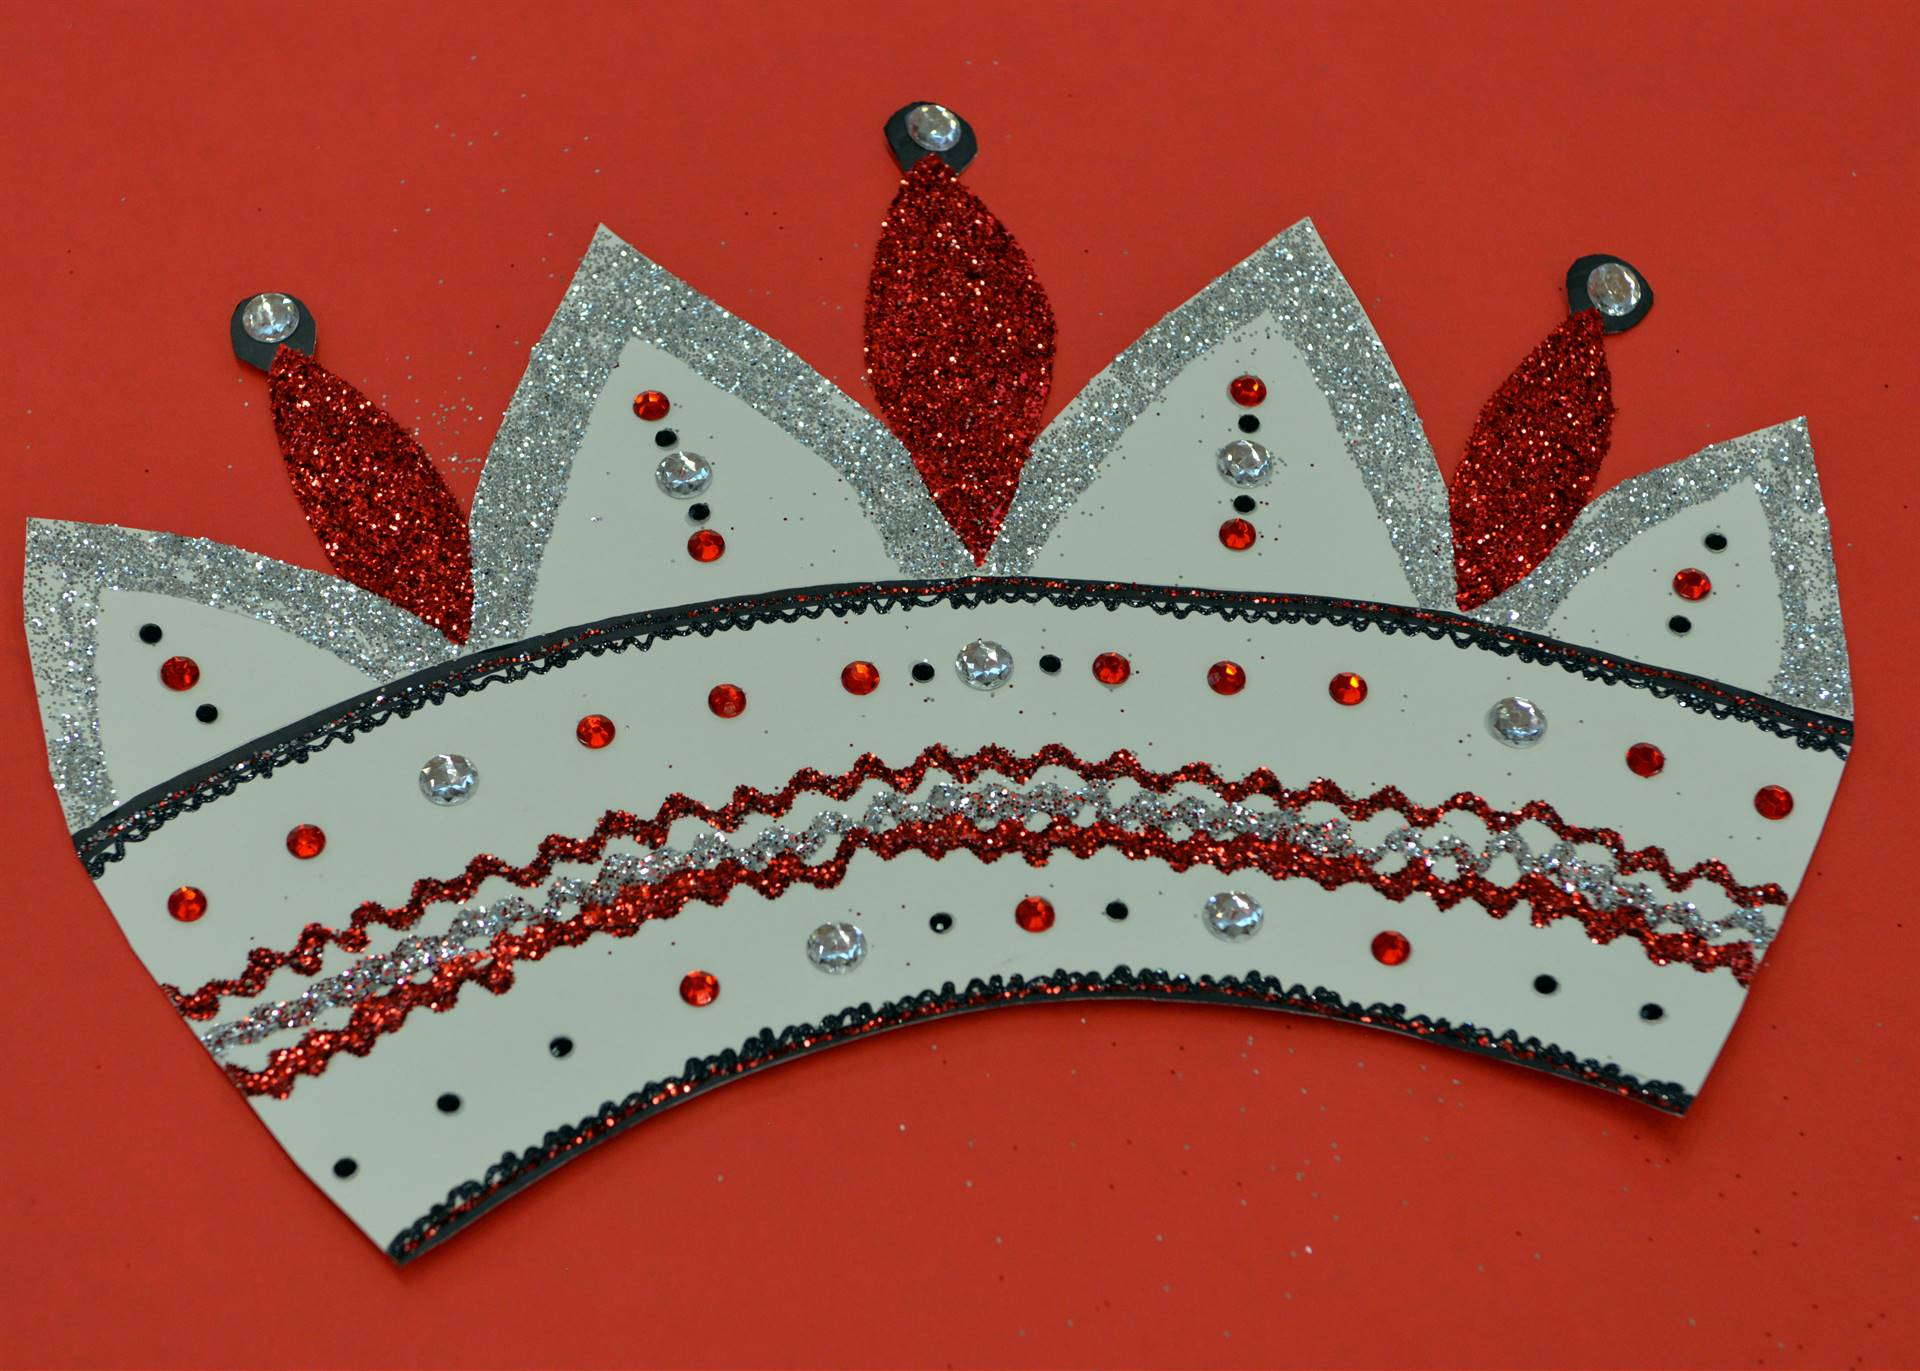 Paper queen crown